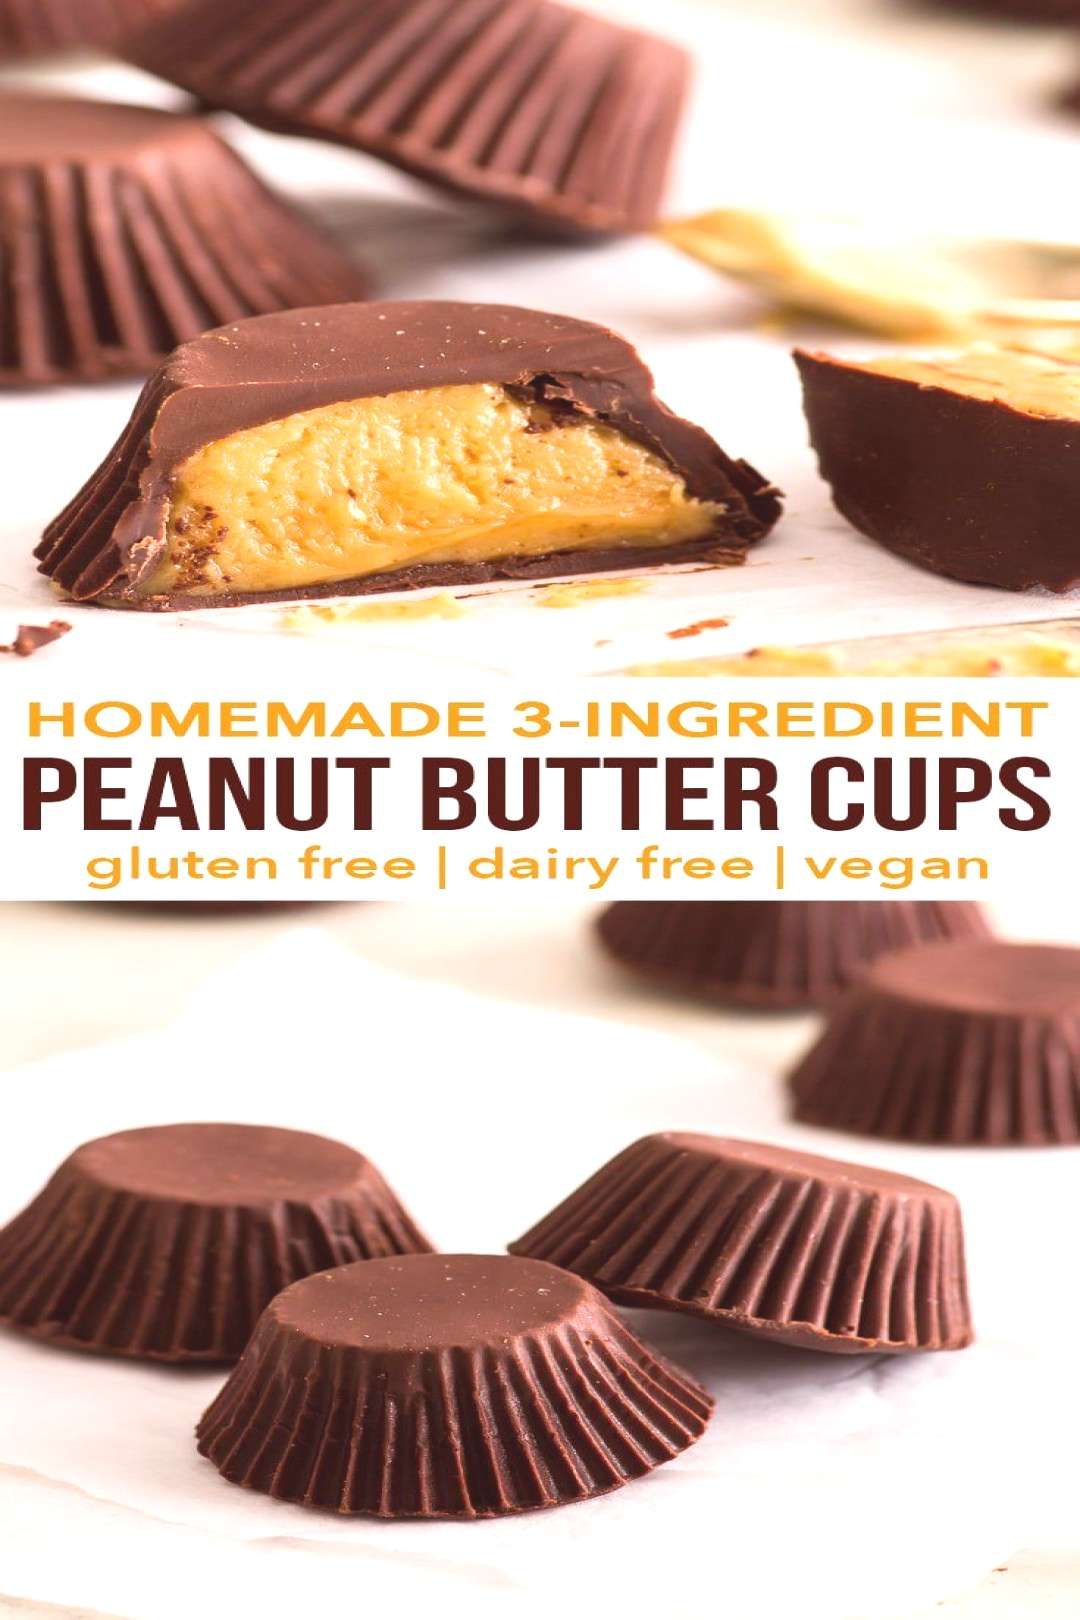 3-Ingredient Homemade Peanut Butter Cups gluten, dairy, egg amp soy free, vegan - These homemade pe